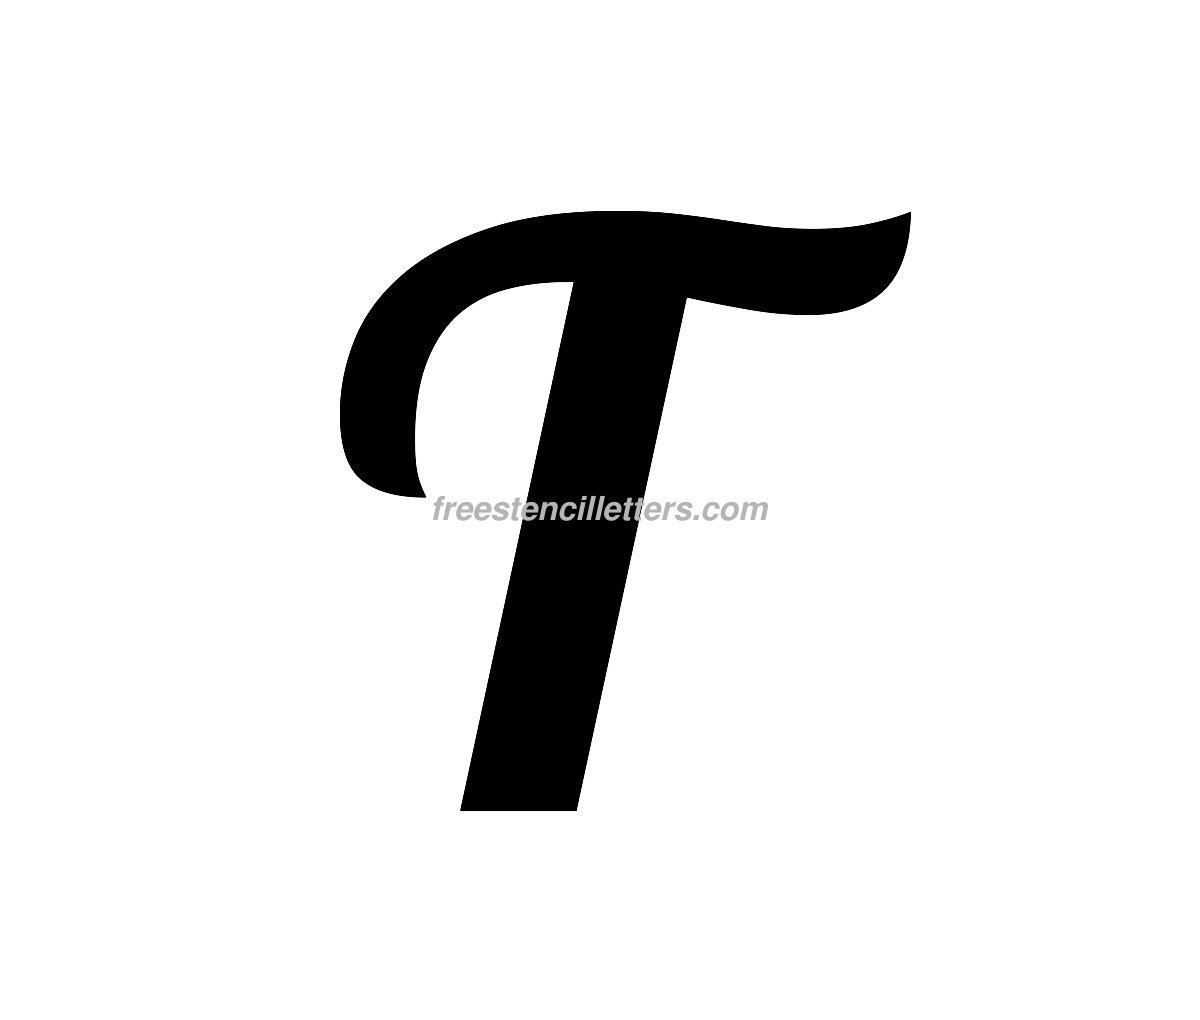 stencil-t T Letter Stencil Templates Free Printable on extra large, large alphabet, monogram alphabet, large wall, lower case alphabet, fancy cursive, old english alphabet, for banner,